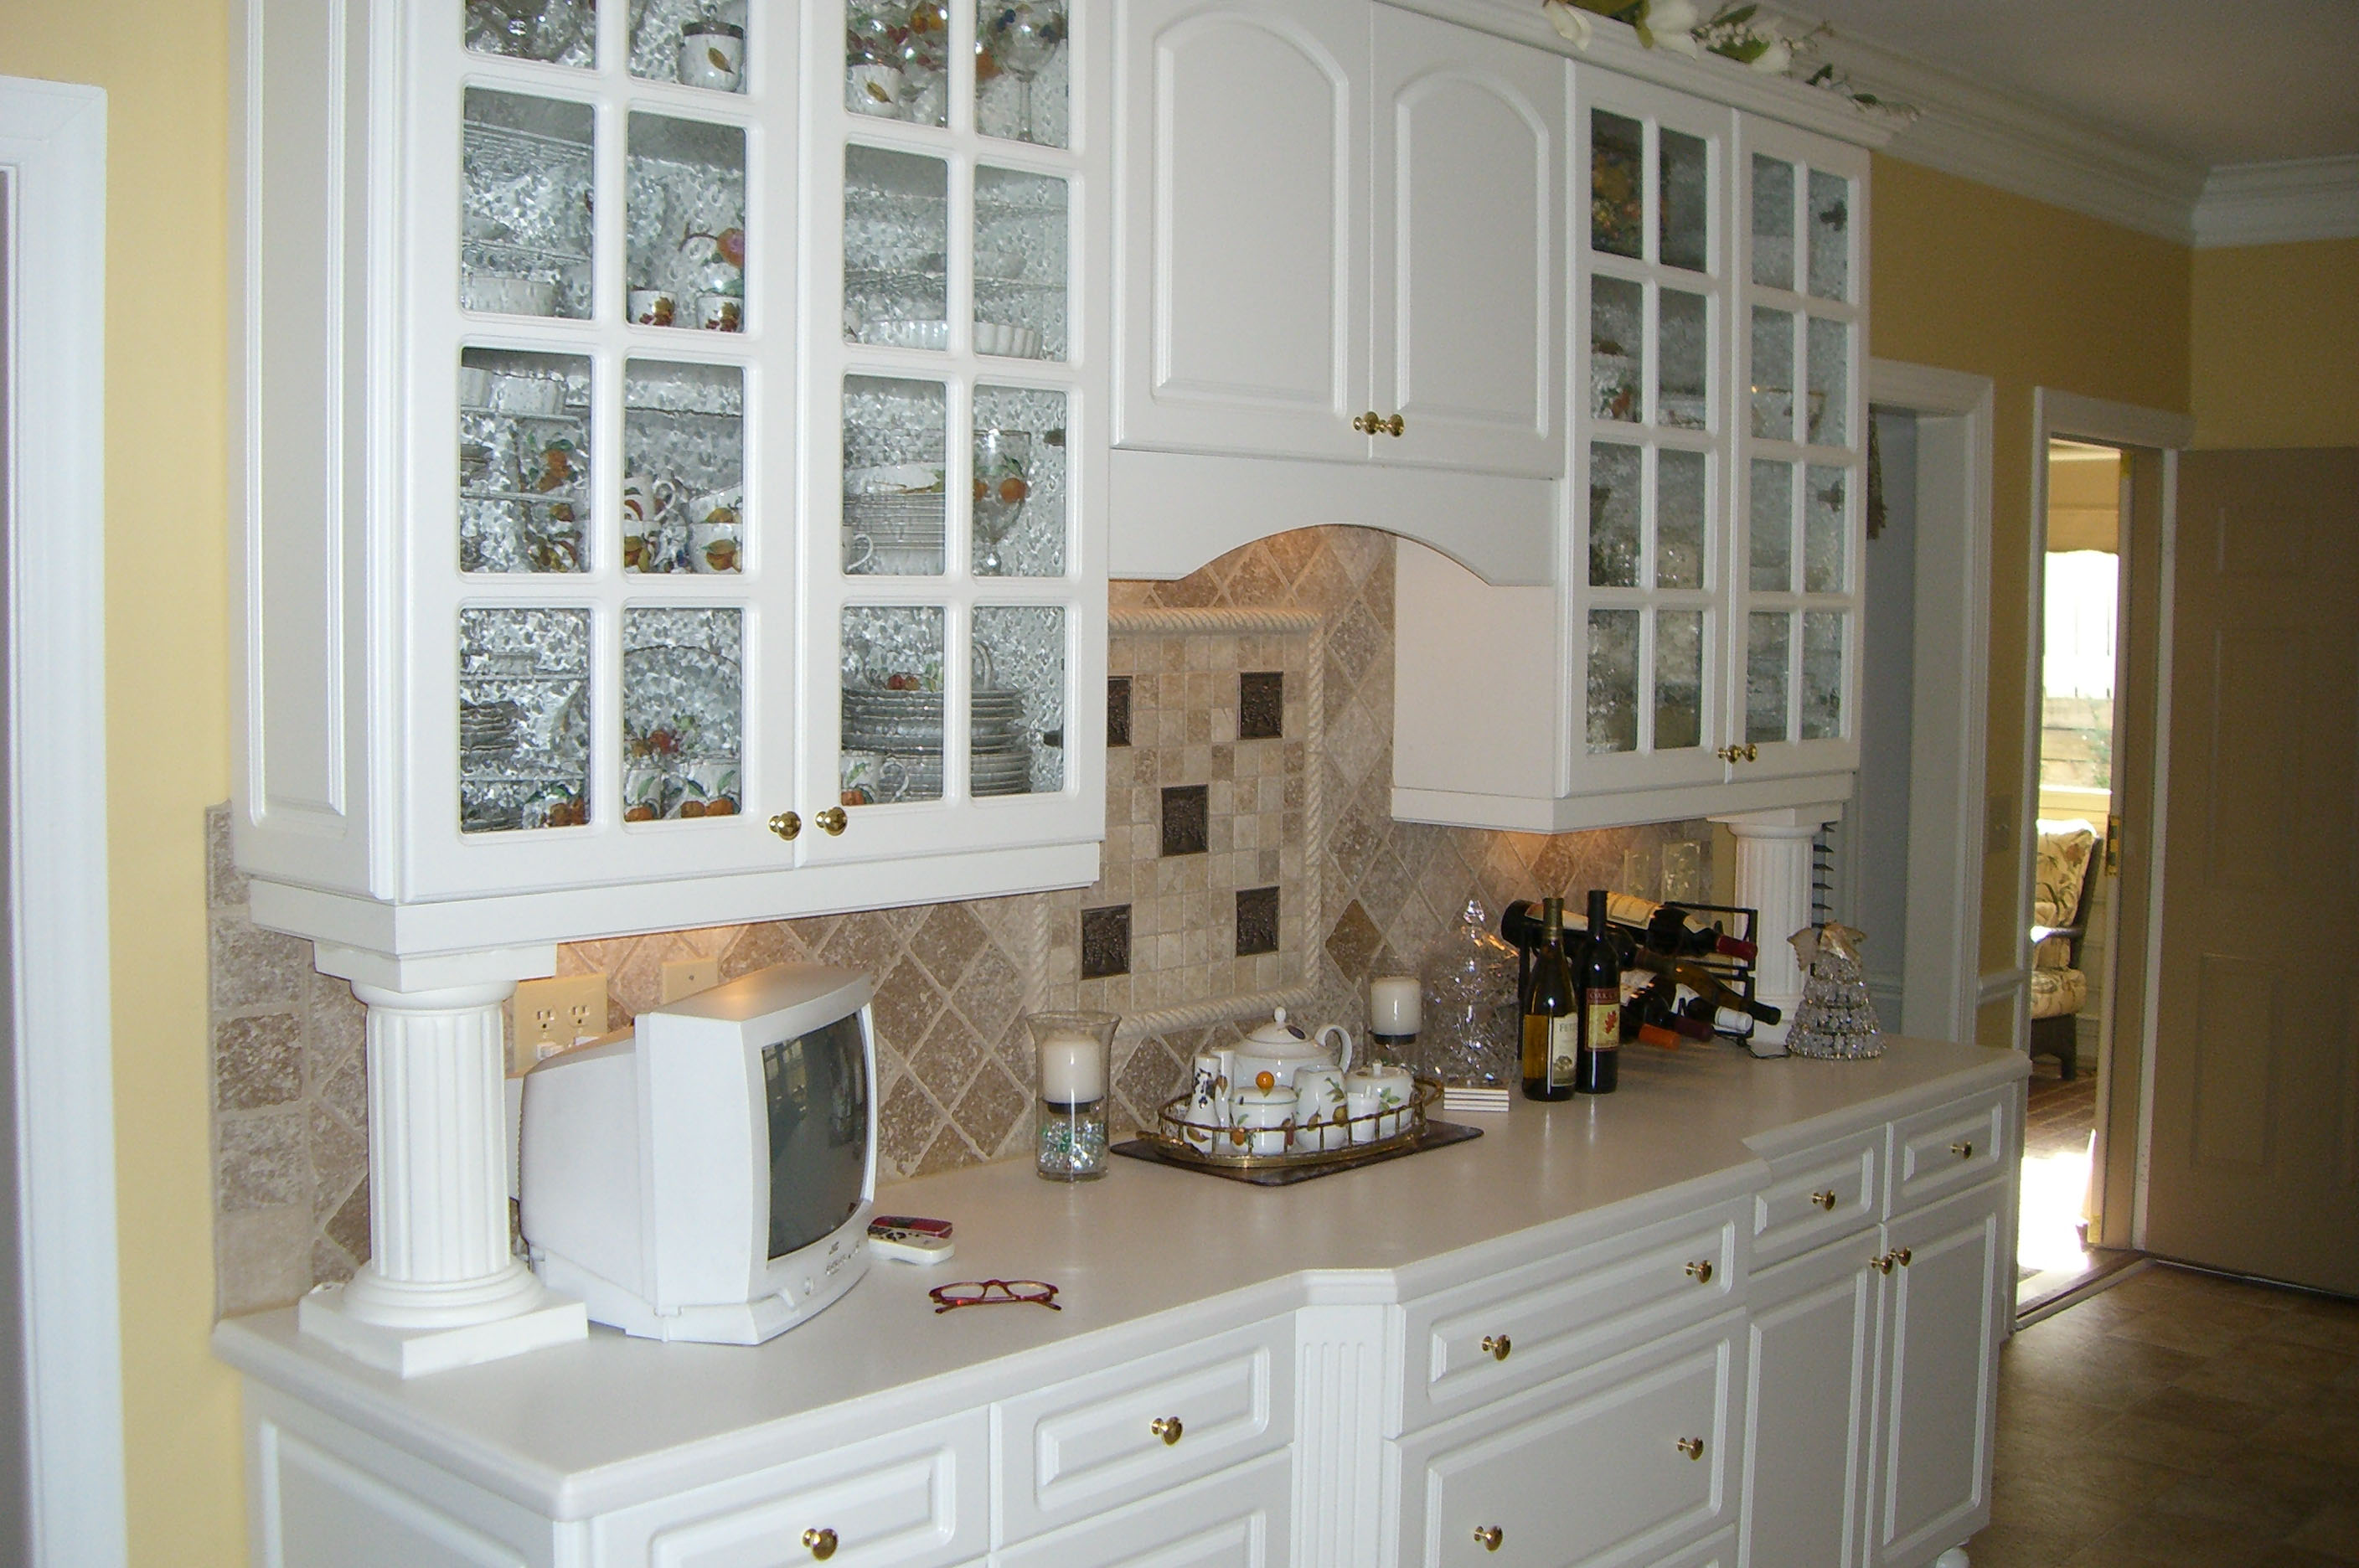 Featured Kitchens By Triad Home Improvements Home Improvements For Winston Salem Nc